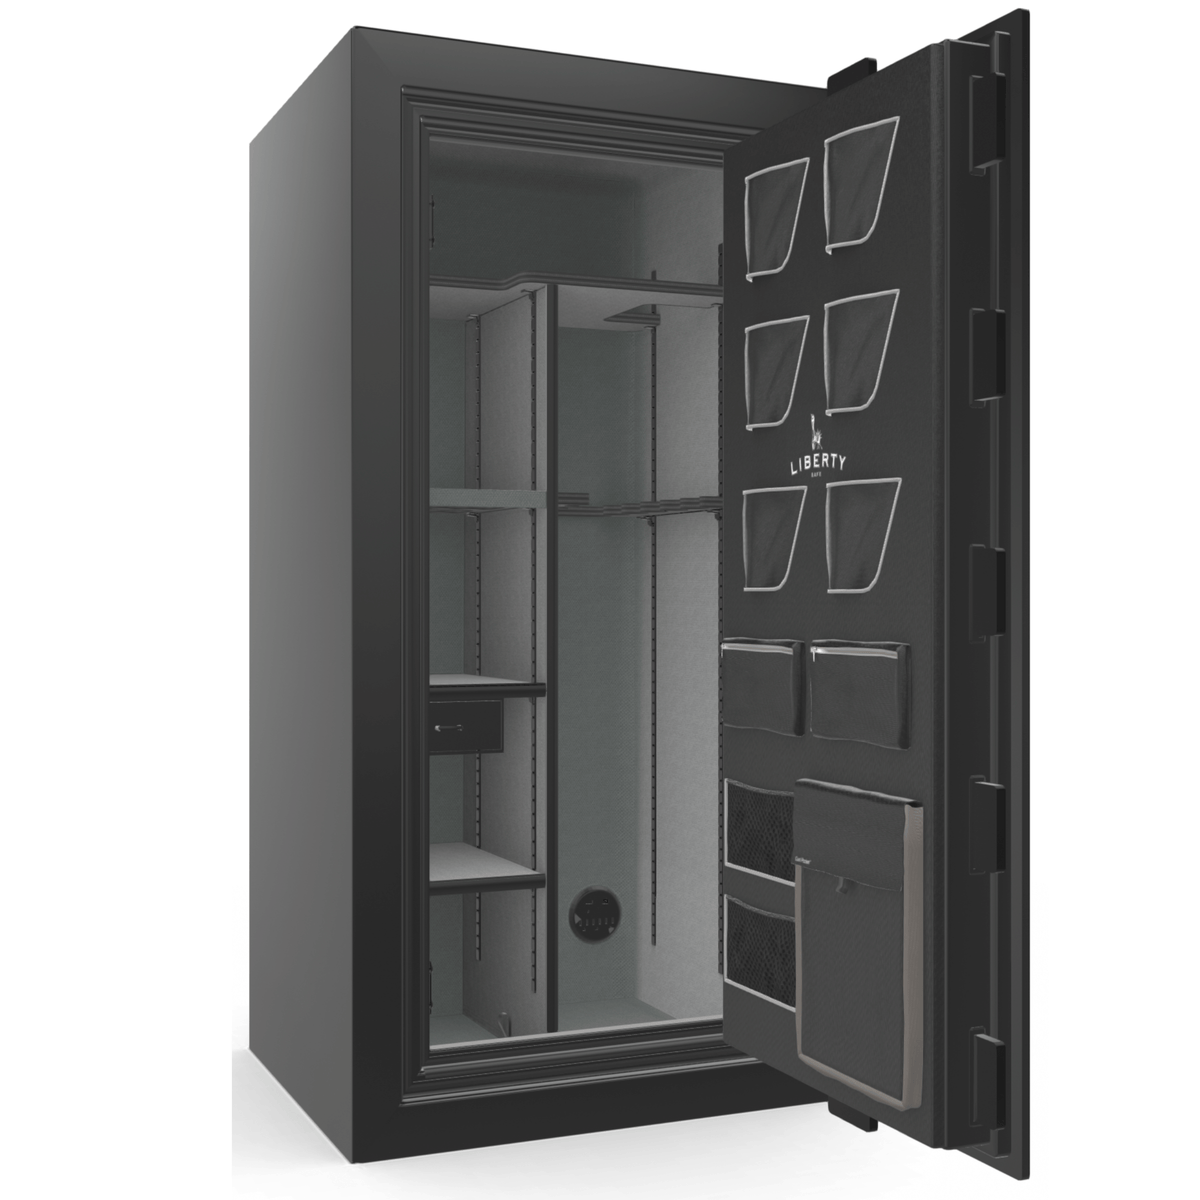 "Classic Plus | 25 | Level 7 Security | 110 Minute Fire Protection | Black Gloss | Black Electronic Lock | 60.5""(H) x 30""(W) x 29""(D)"